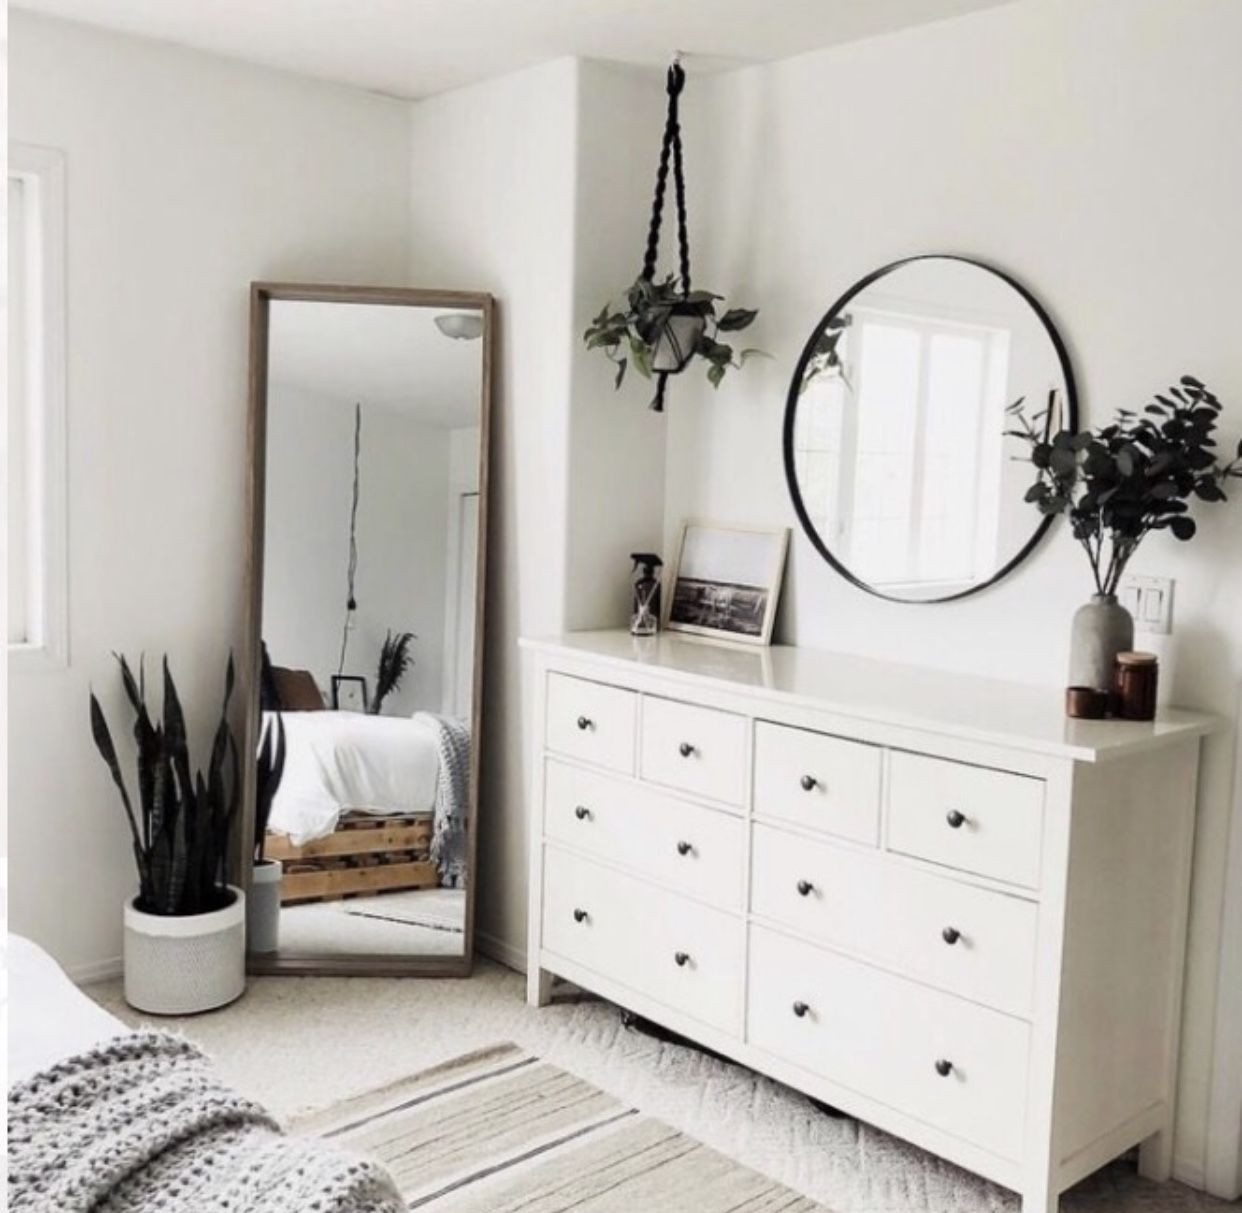 P I N T E R E S T Oliviaagrayee Simple Bedroom Decor Cool Bedroom Furniture Home Decor Bedroom